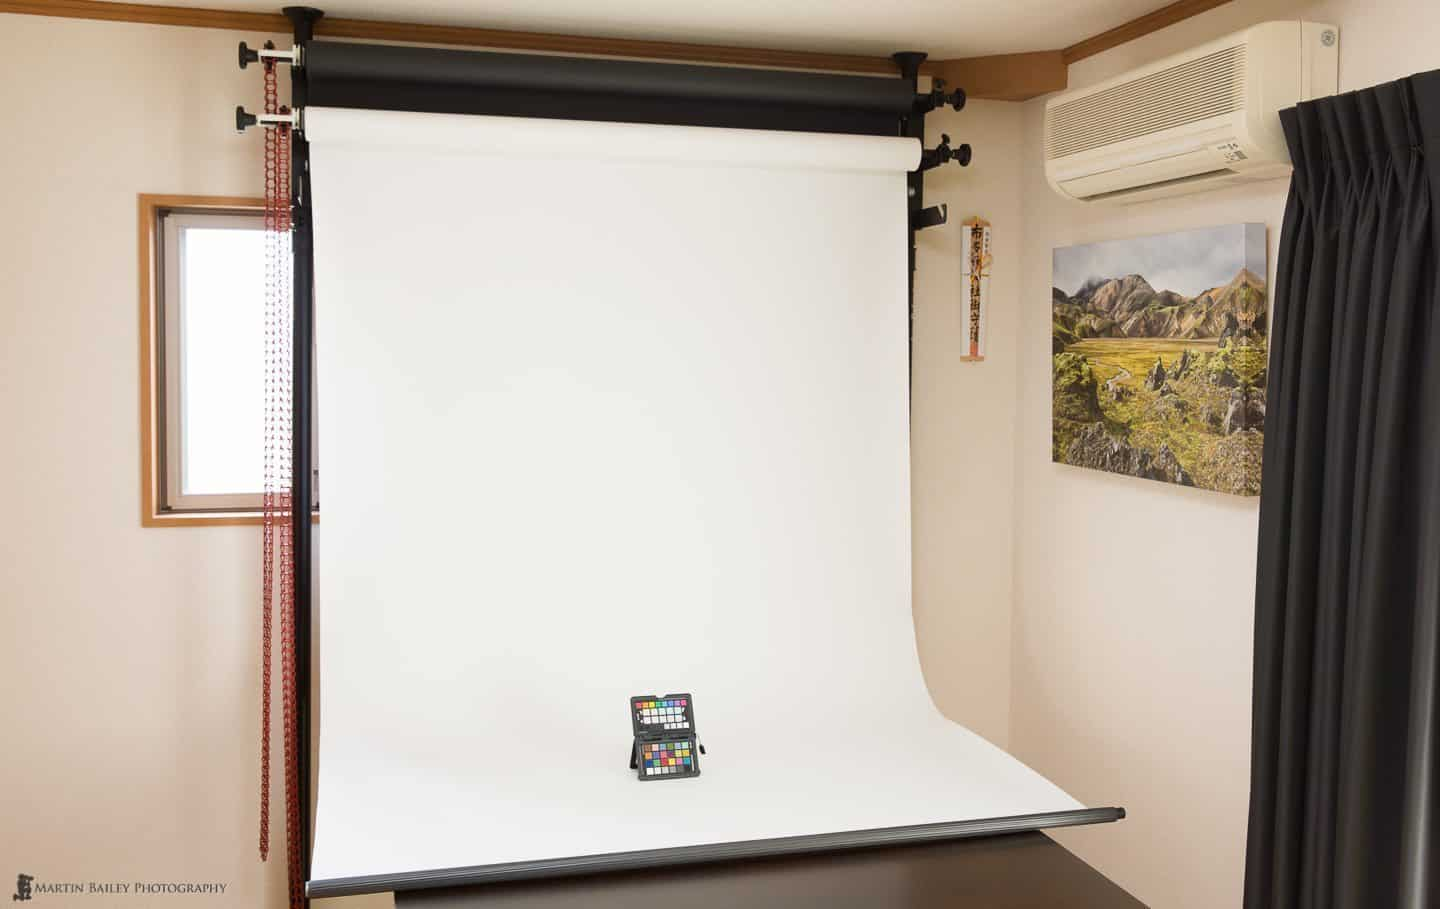 Manfrotto 032B Auto Poles and Expan Drive Background Support Sys